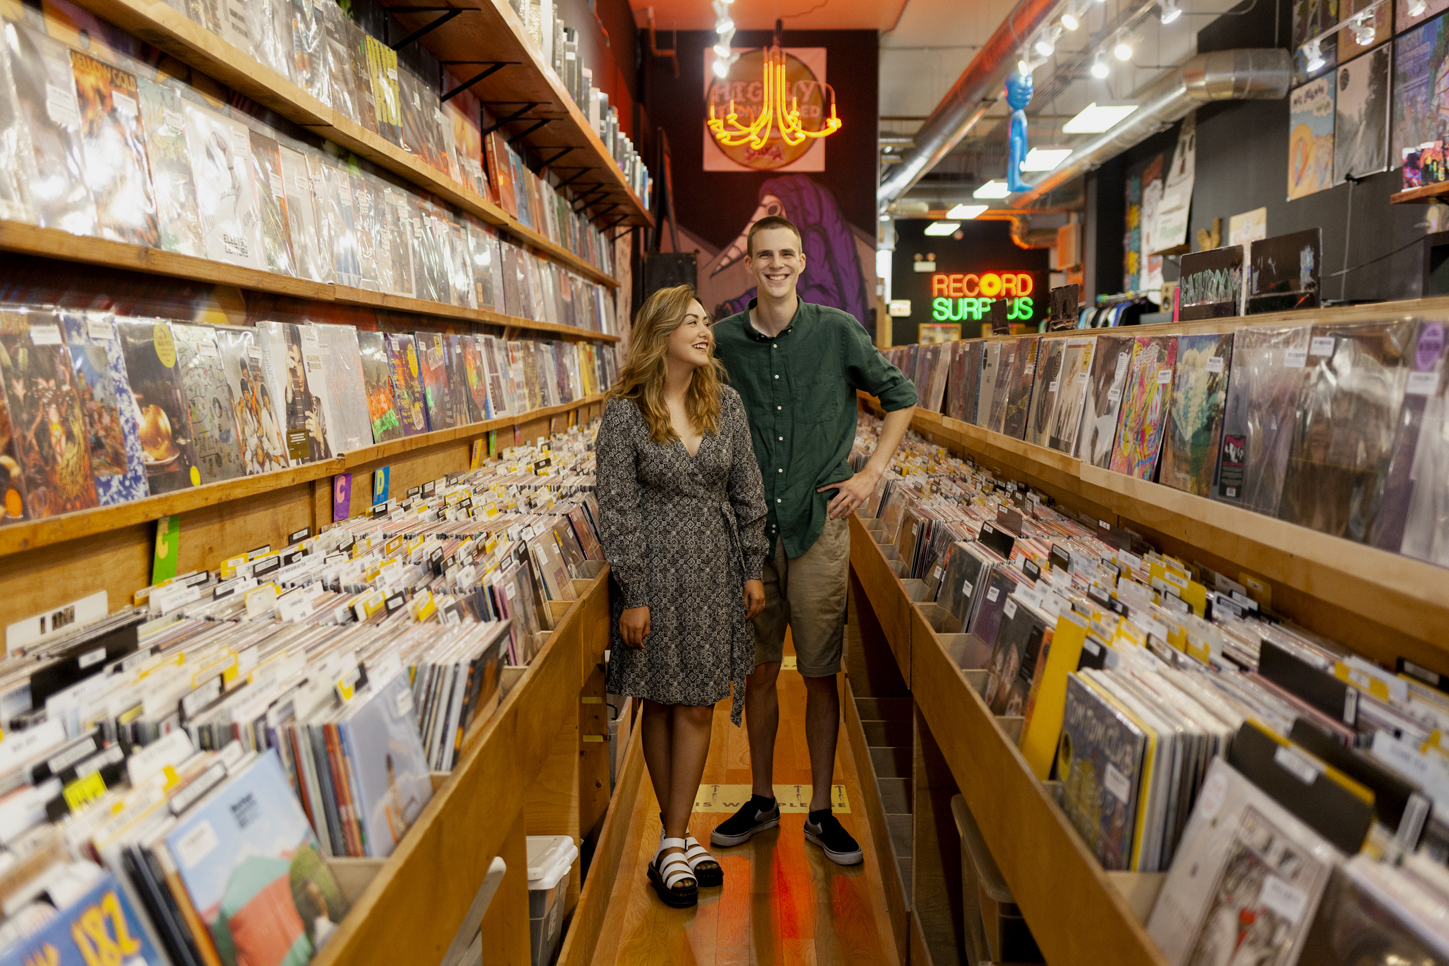 Record Store Engagement Session in Wicker Park, Chicago